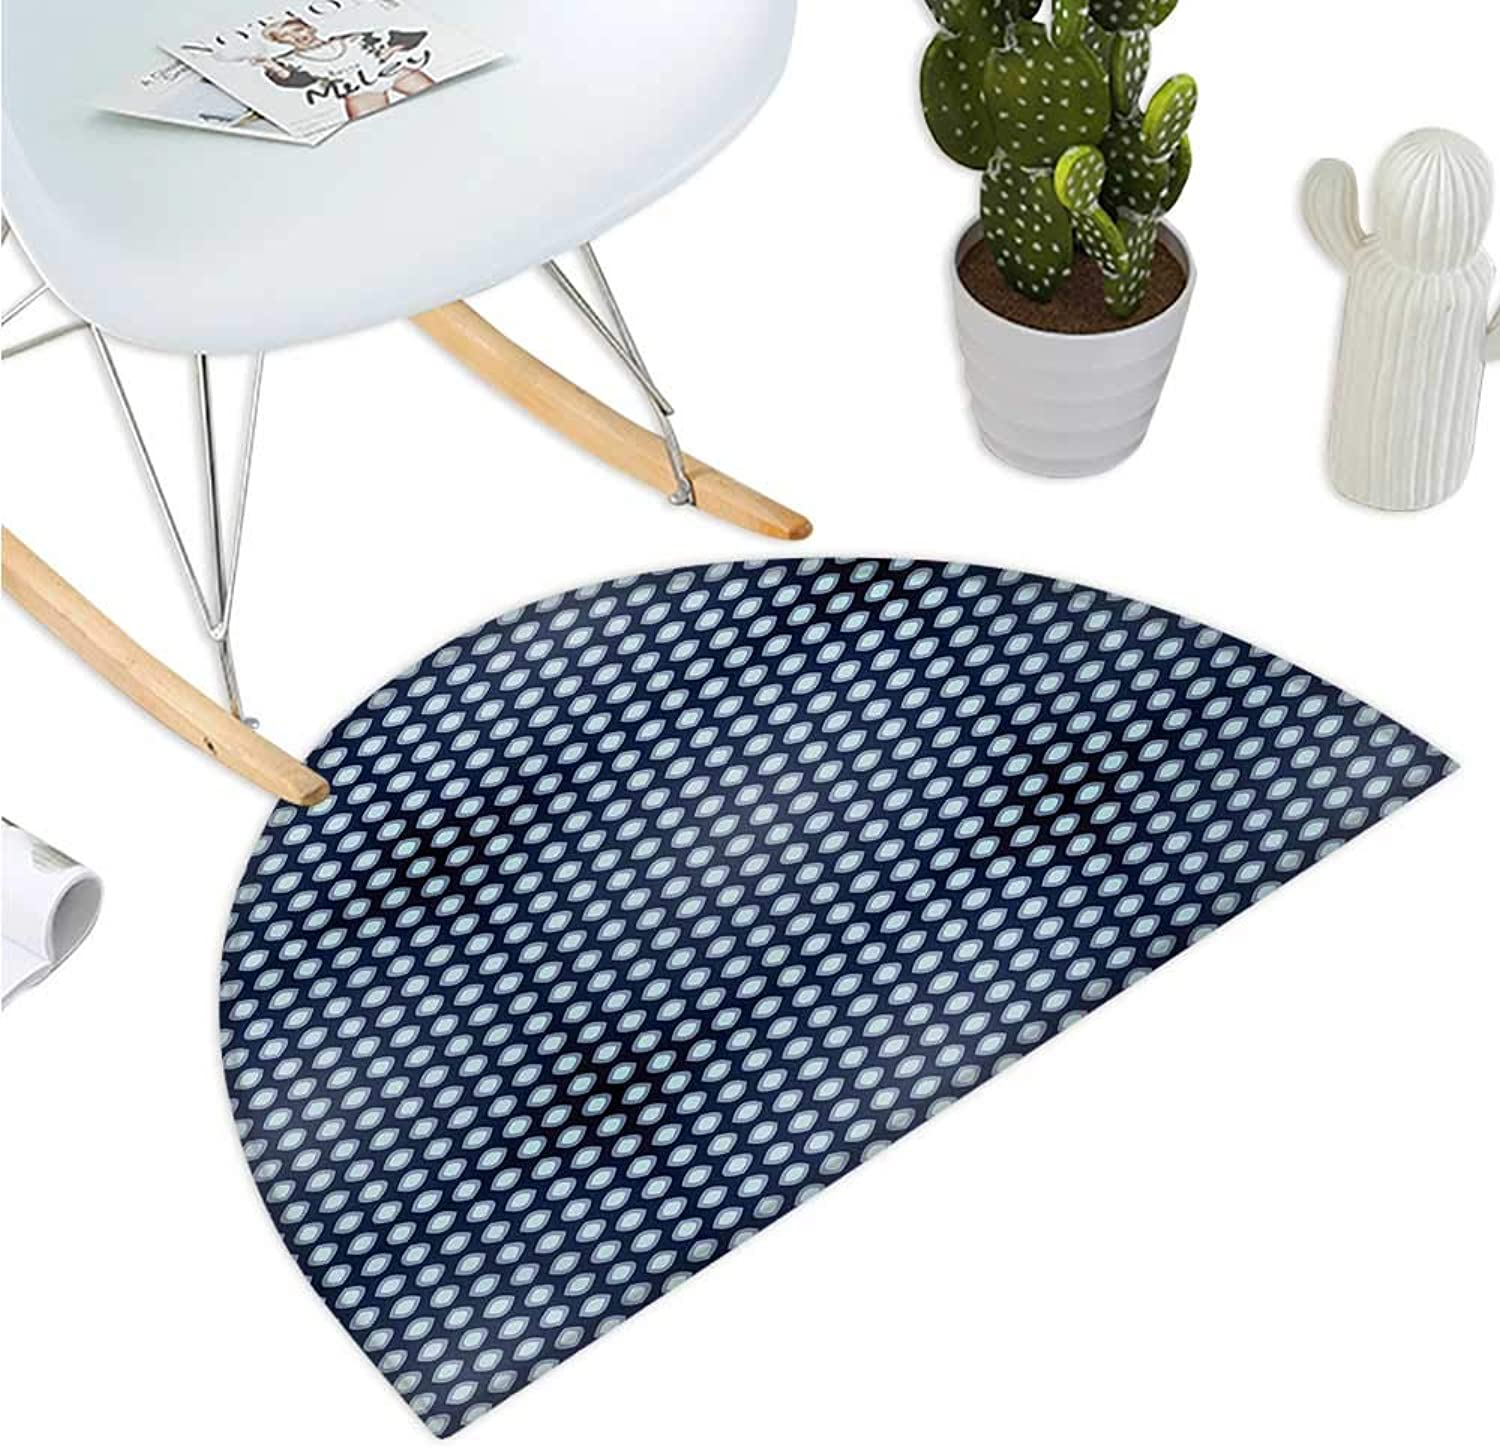 Geometric Semicircular Cushion Ornamental Abstract Oval Shapes Pattern in bluee Tones Simplistic Design Entry Door Mat H 39.3  xD 59  Dark bluee Pale bluee